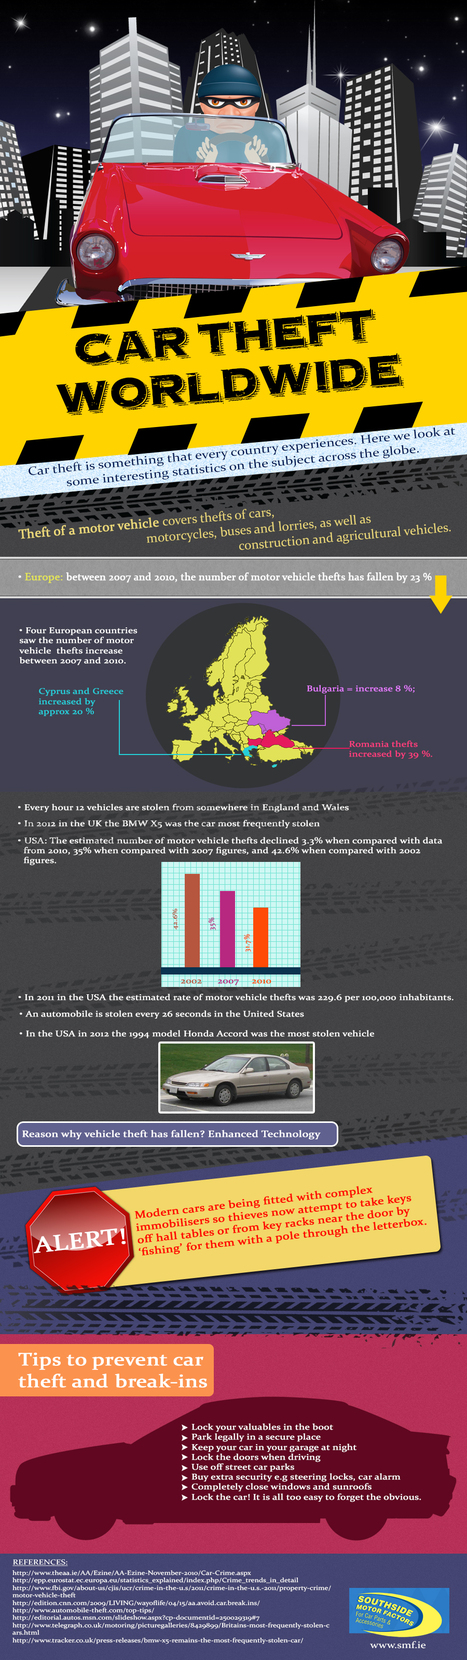 Car Theft Worldwide [Infographic]   Your Product News   Blogs   Scoop.it